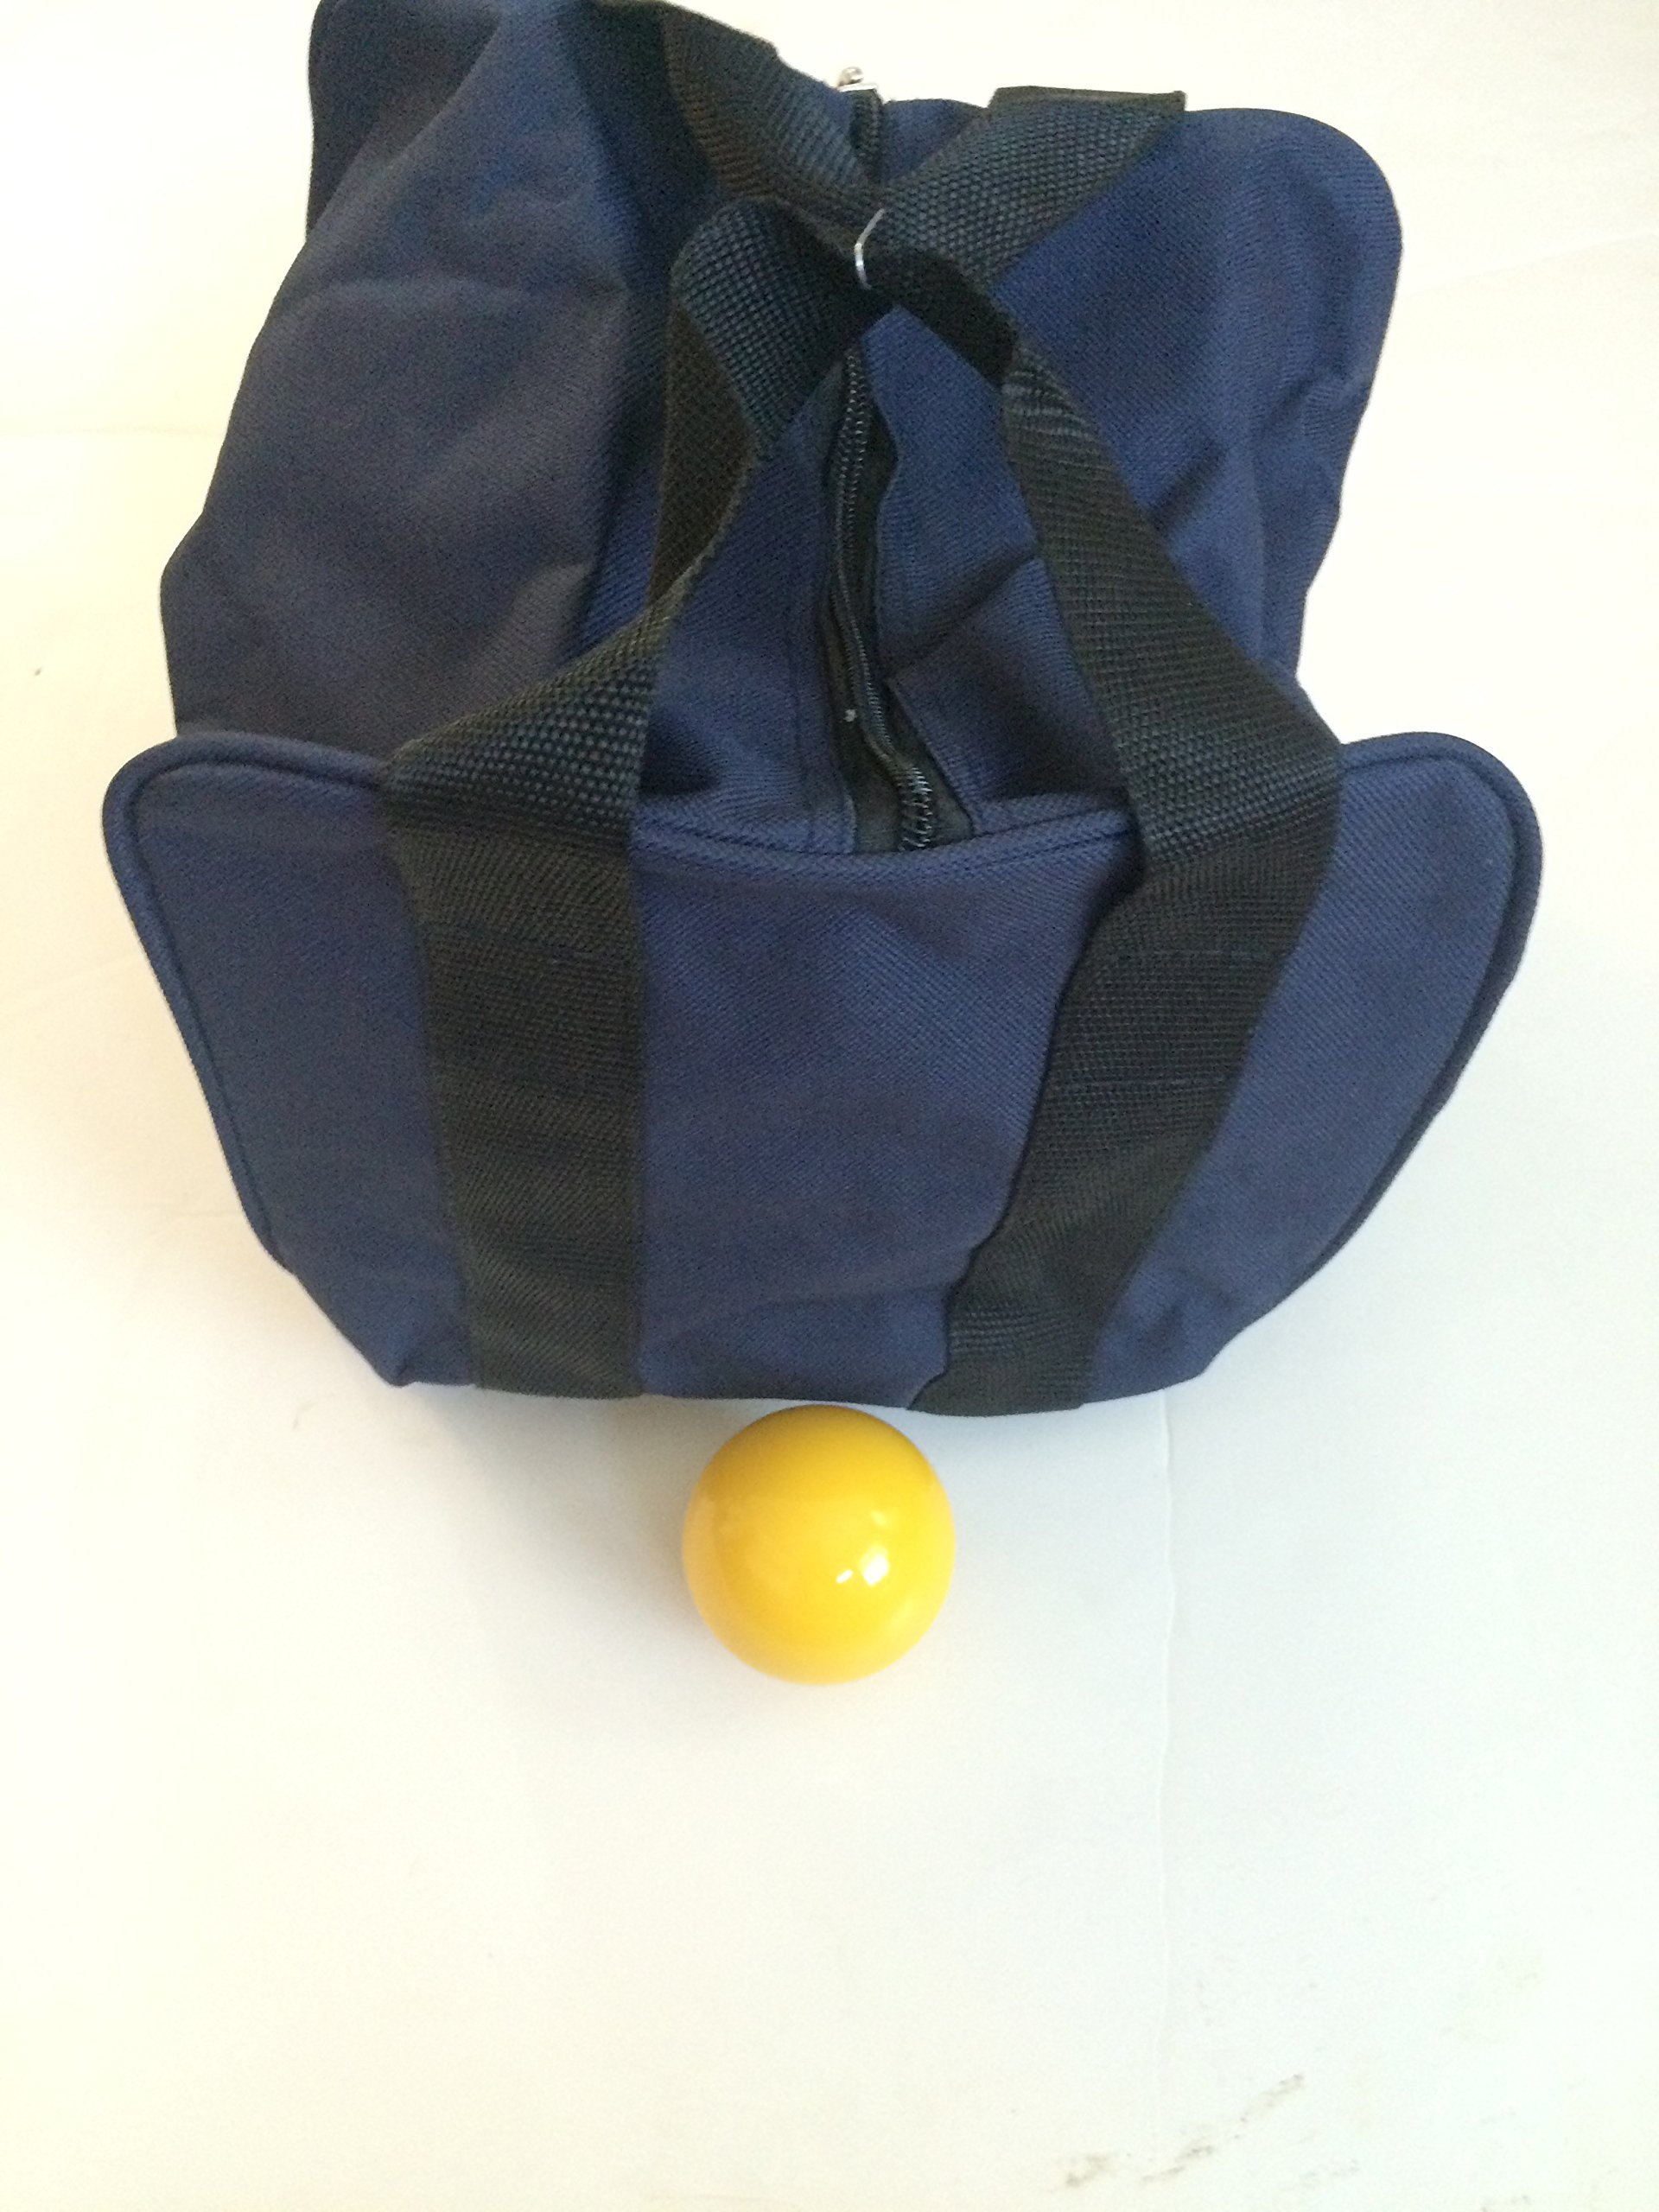 Unique Bocce Accessories Package - Extra Heavy Duty Nylon Bocce Bag (Blue with Black Handles) and yellow pallina by BuyBocceBalls